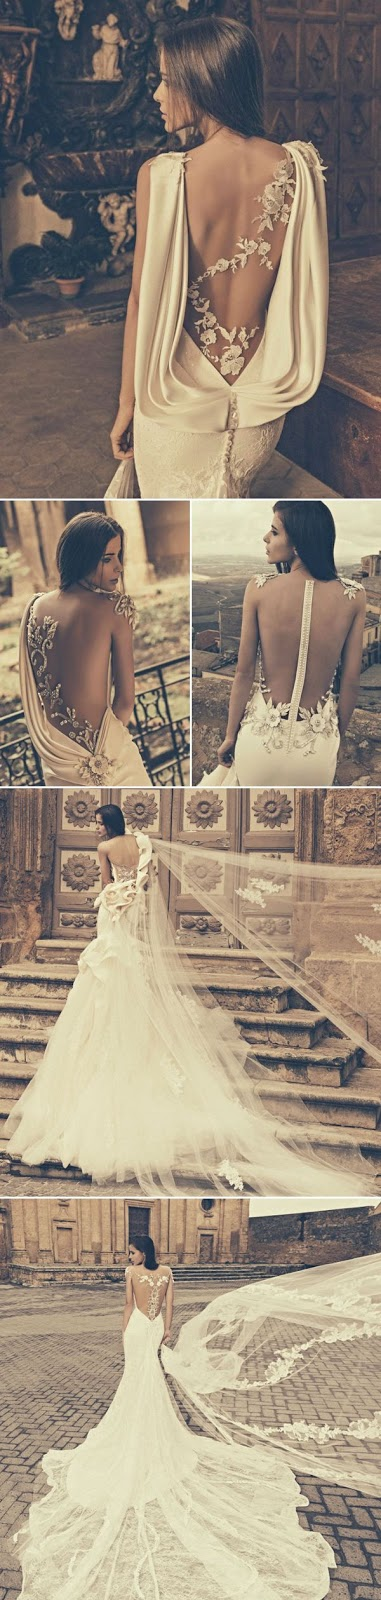 27 Wedding Dresses with Stunning Back Details from 2015 Bridal